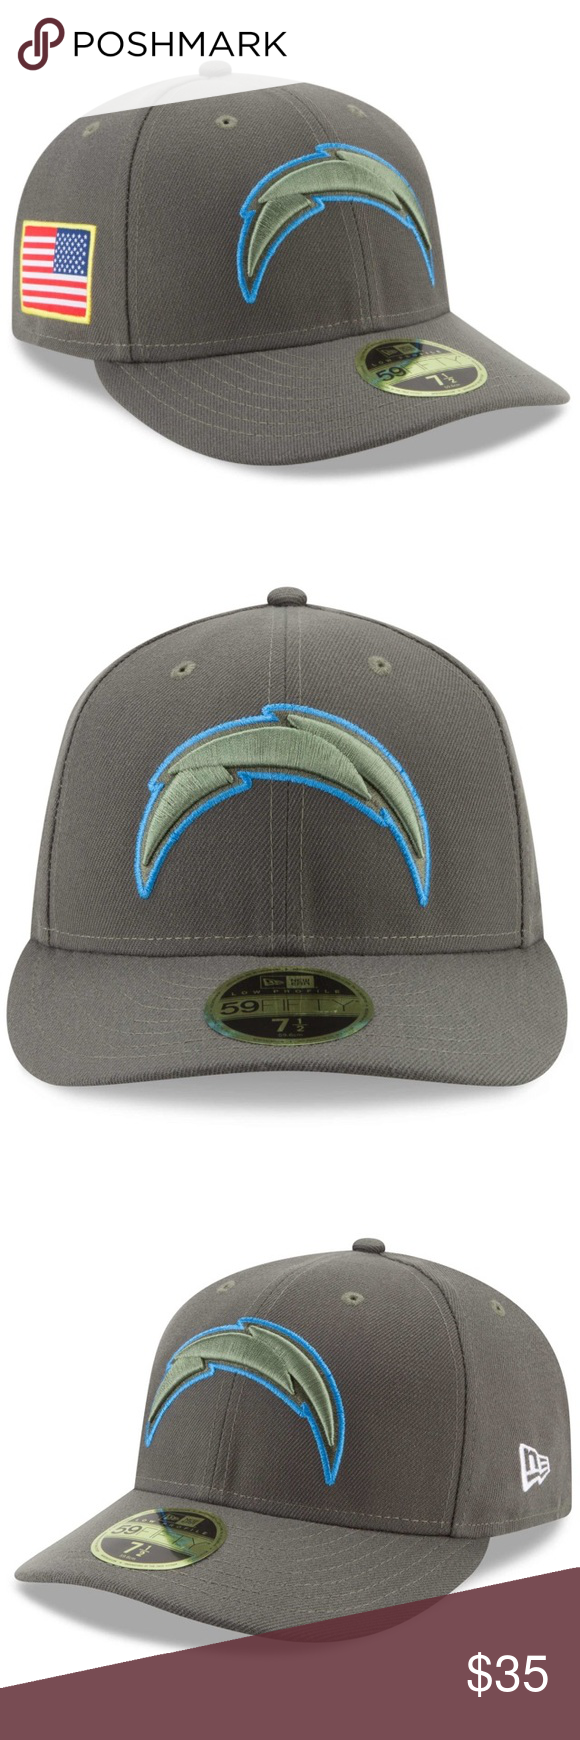 detailed look f10a3 49425 LA Chargers New Era Salute To Service Fitted Hat Tip your cap to those who  serve